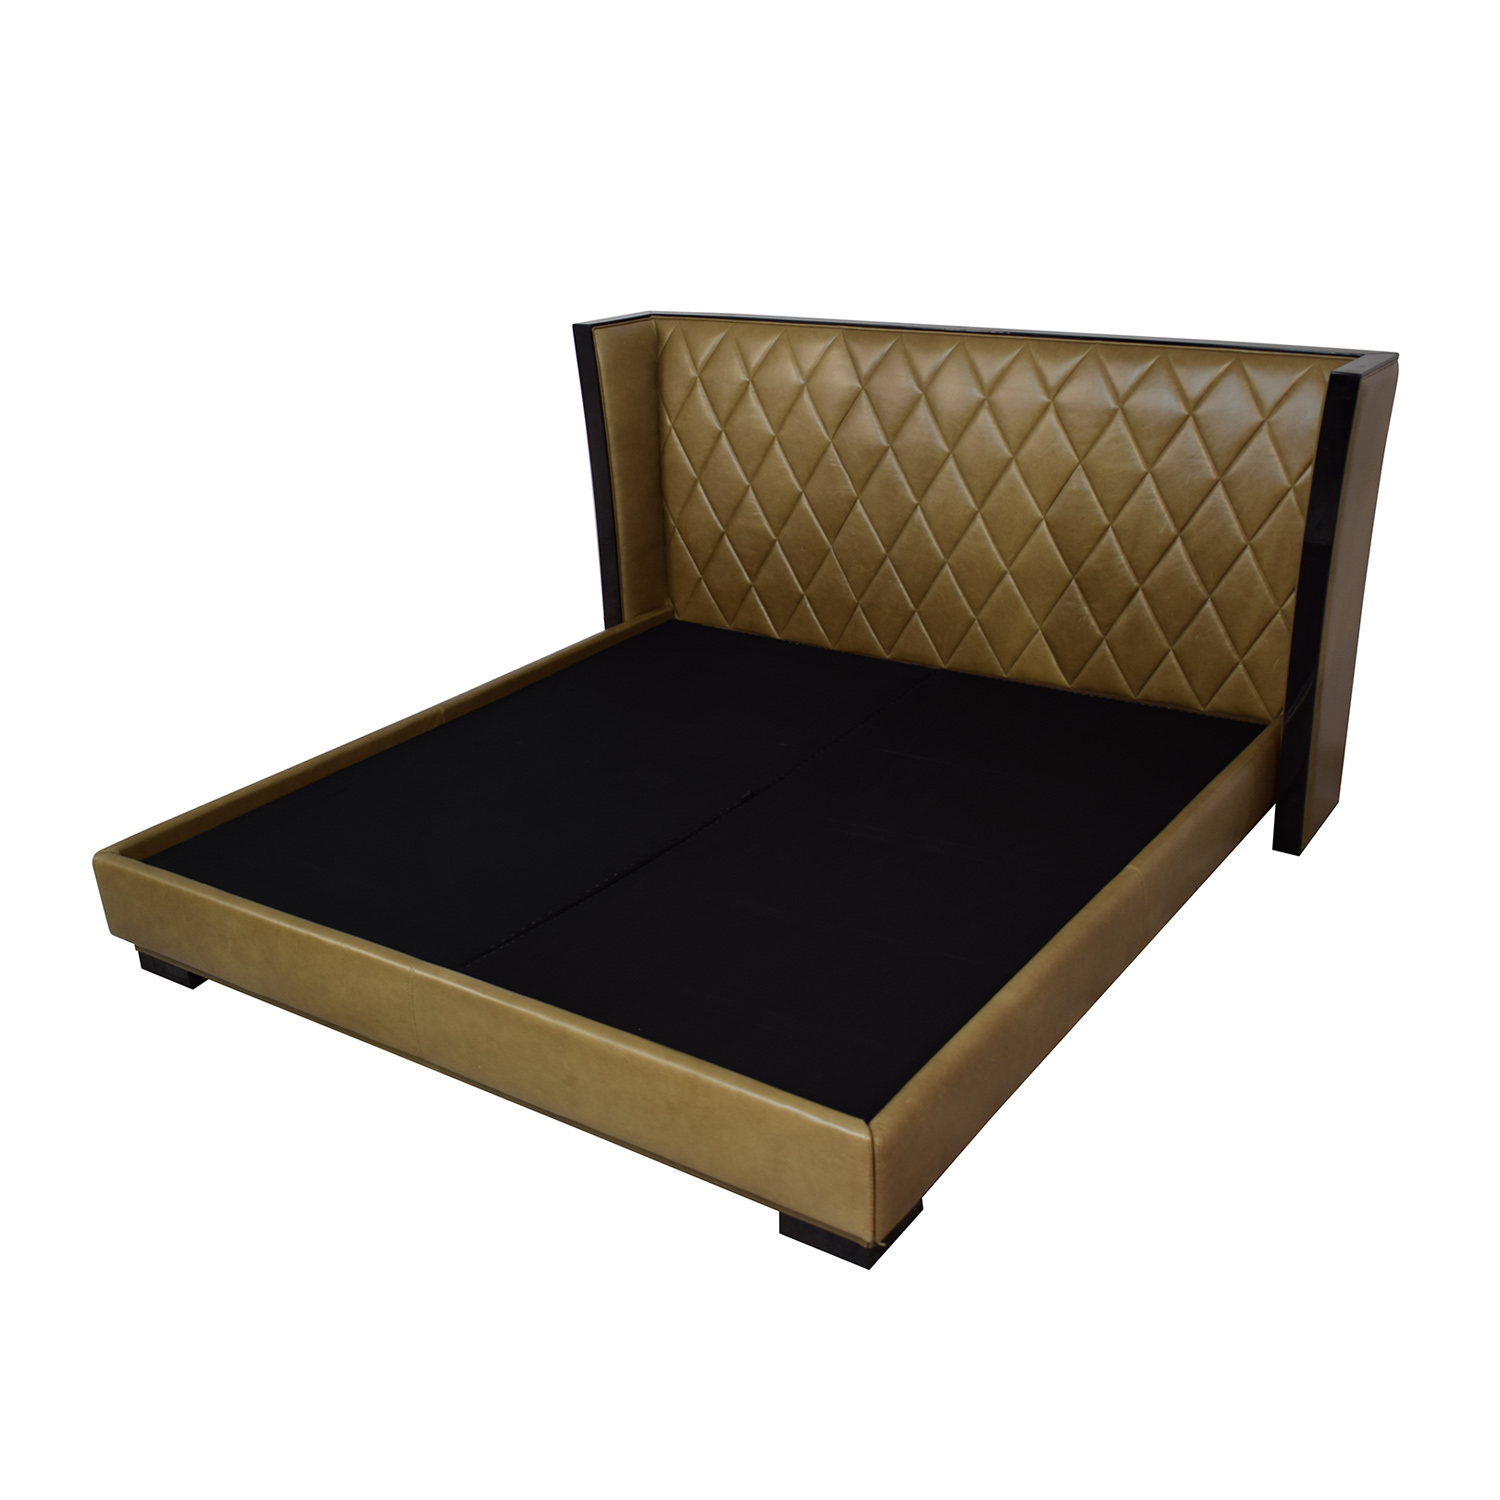 Tui Lifestyle Tui Lifestyle Park Ave King Size Bed dimensions